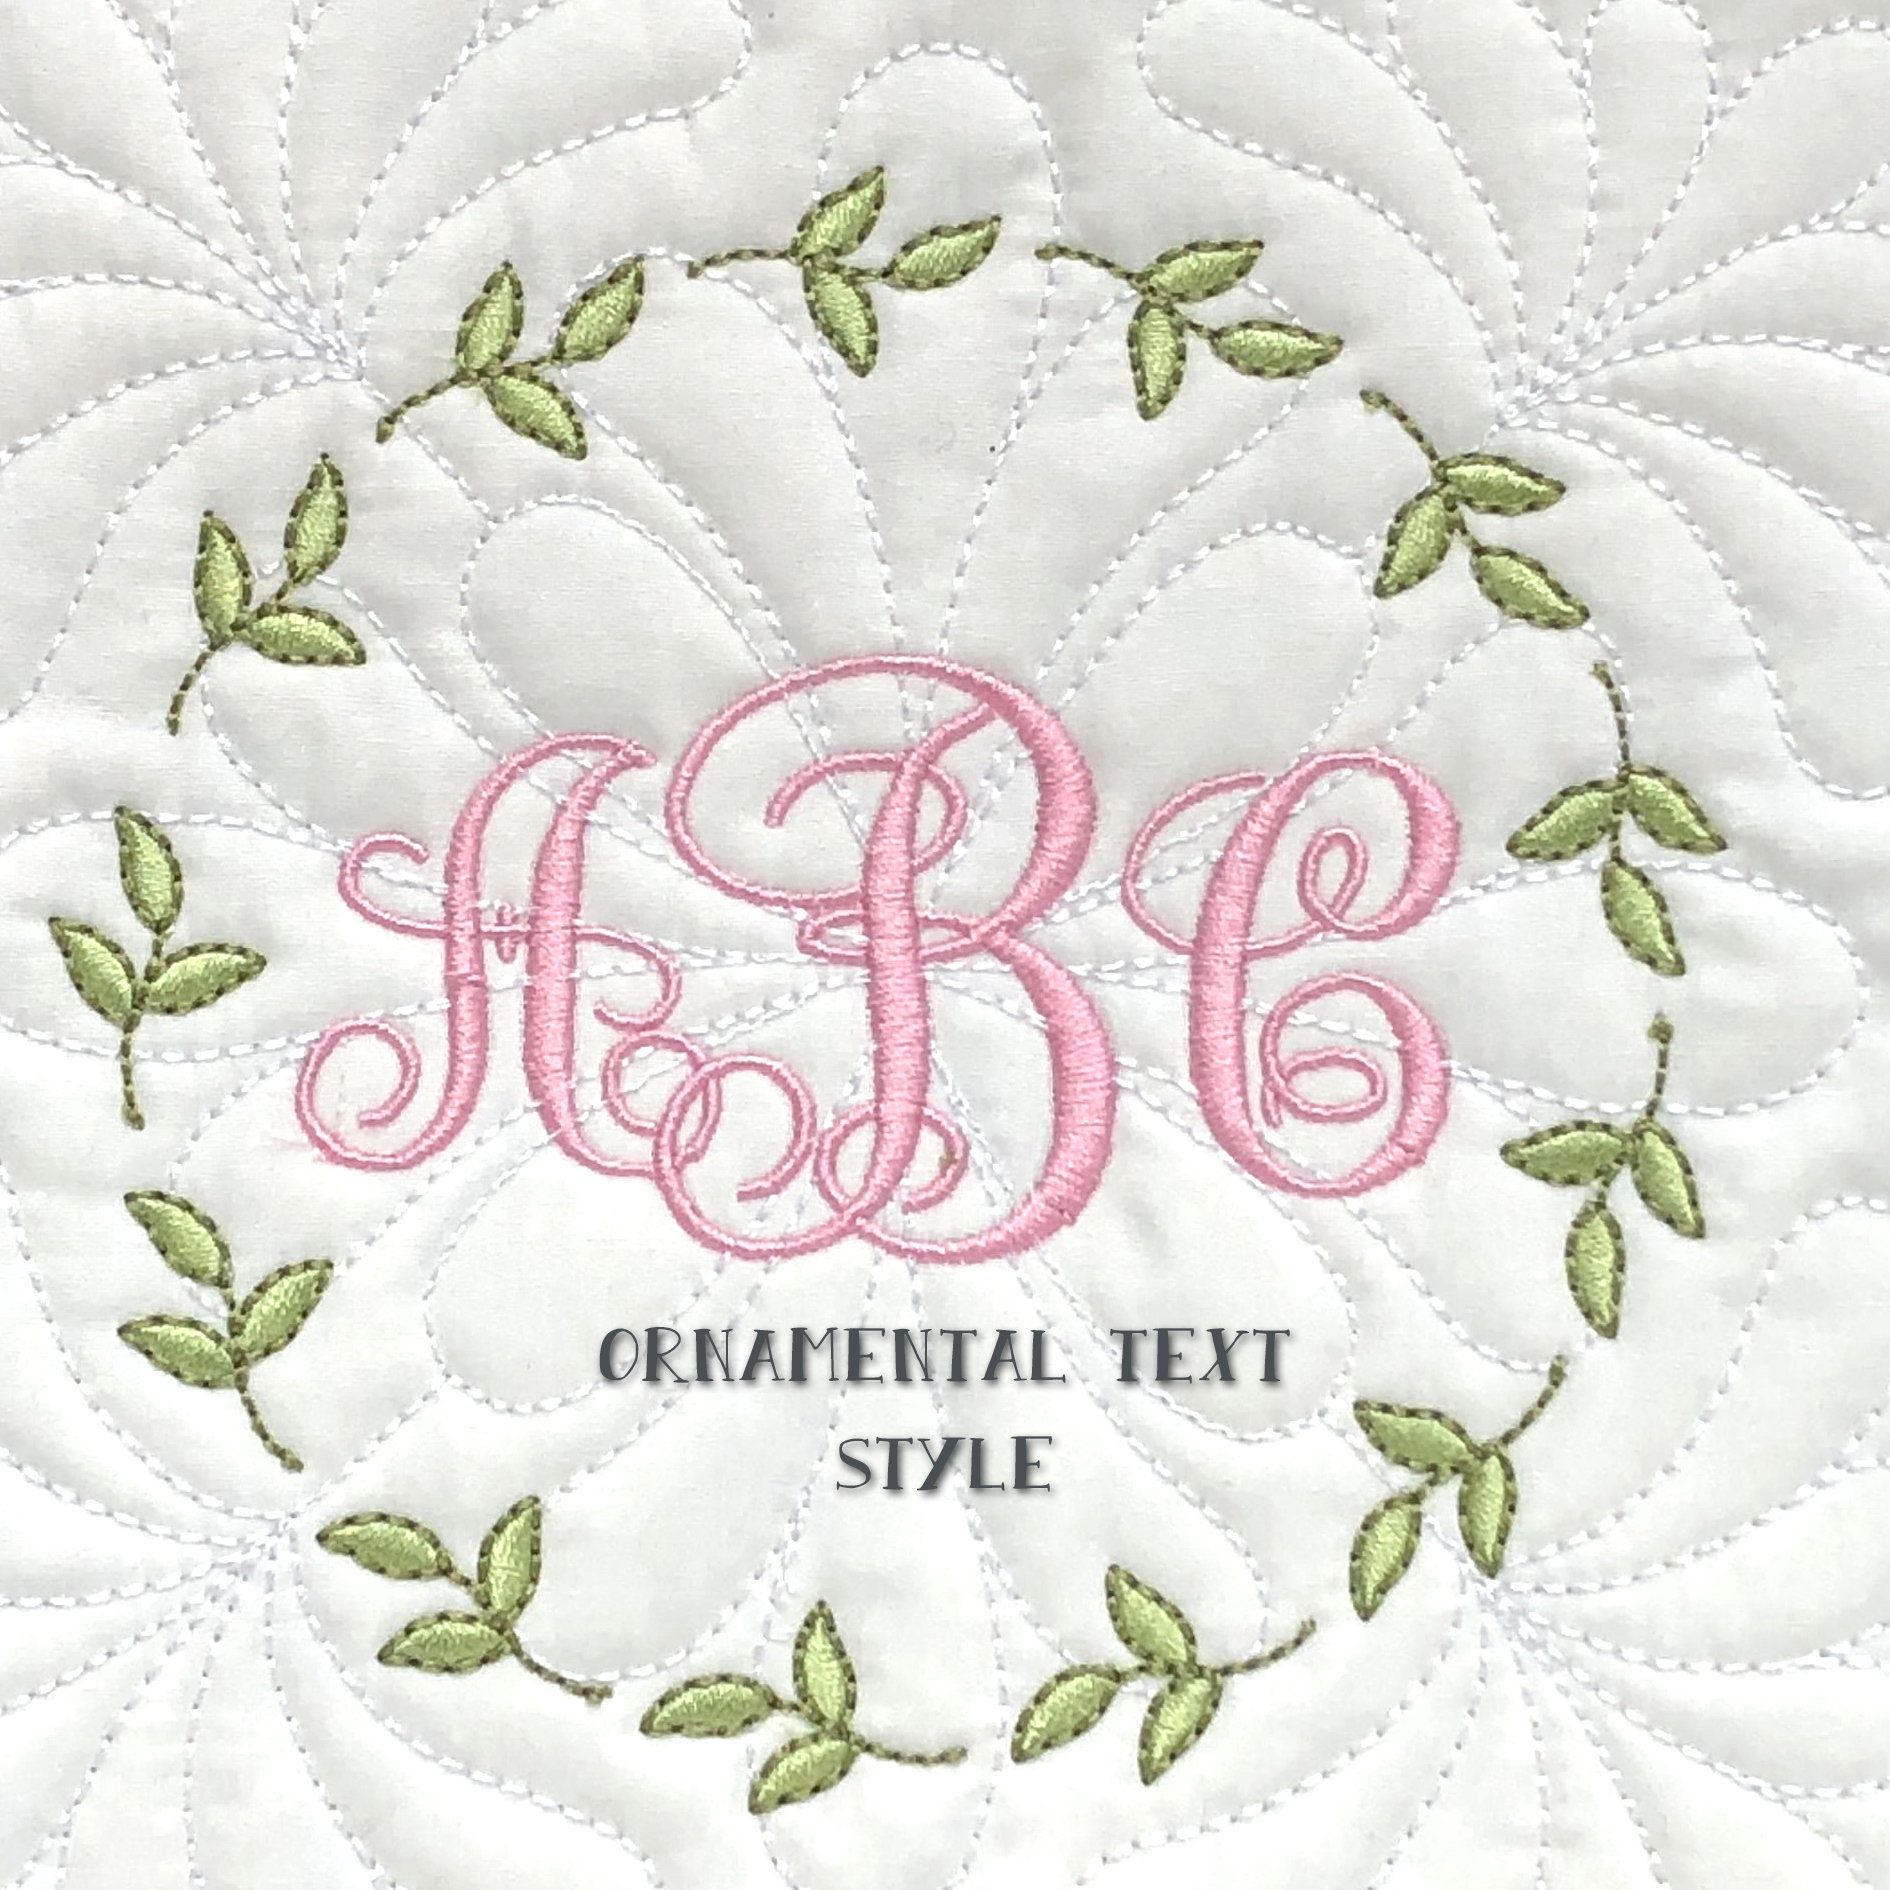 Monogrammed baby blanket embroidered baby blanket monogrammed quilt monogrammed baby blanket embroidered baby blanket monogrammed quilt personalized baby blanket custom baby blanket baby gift custom quilt negle Image collections